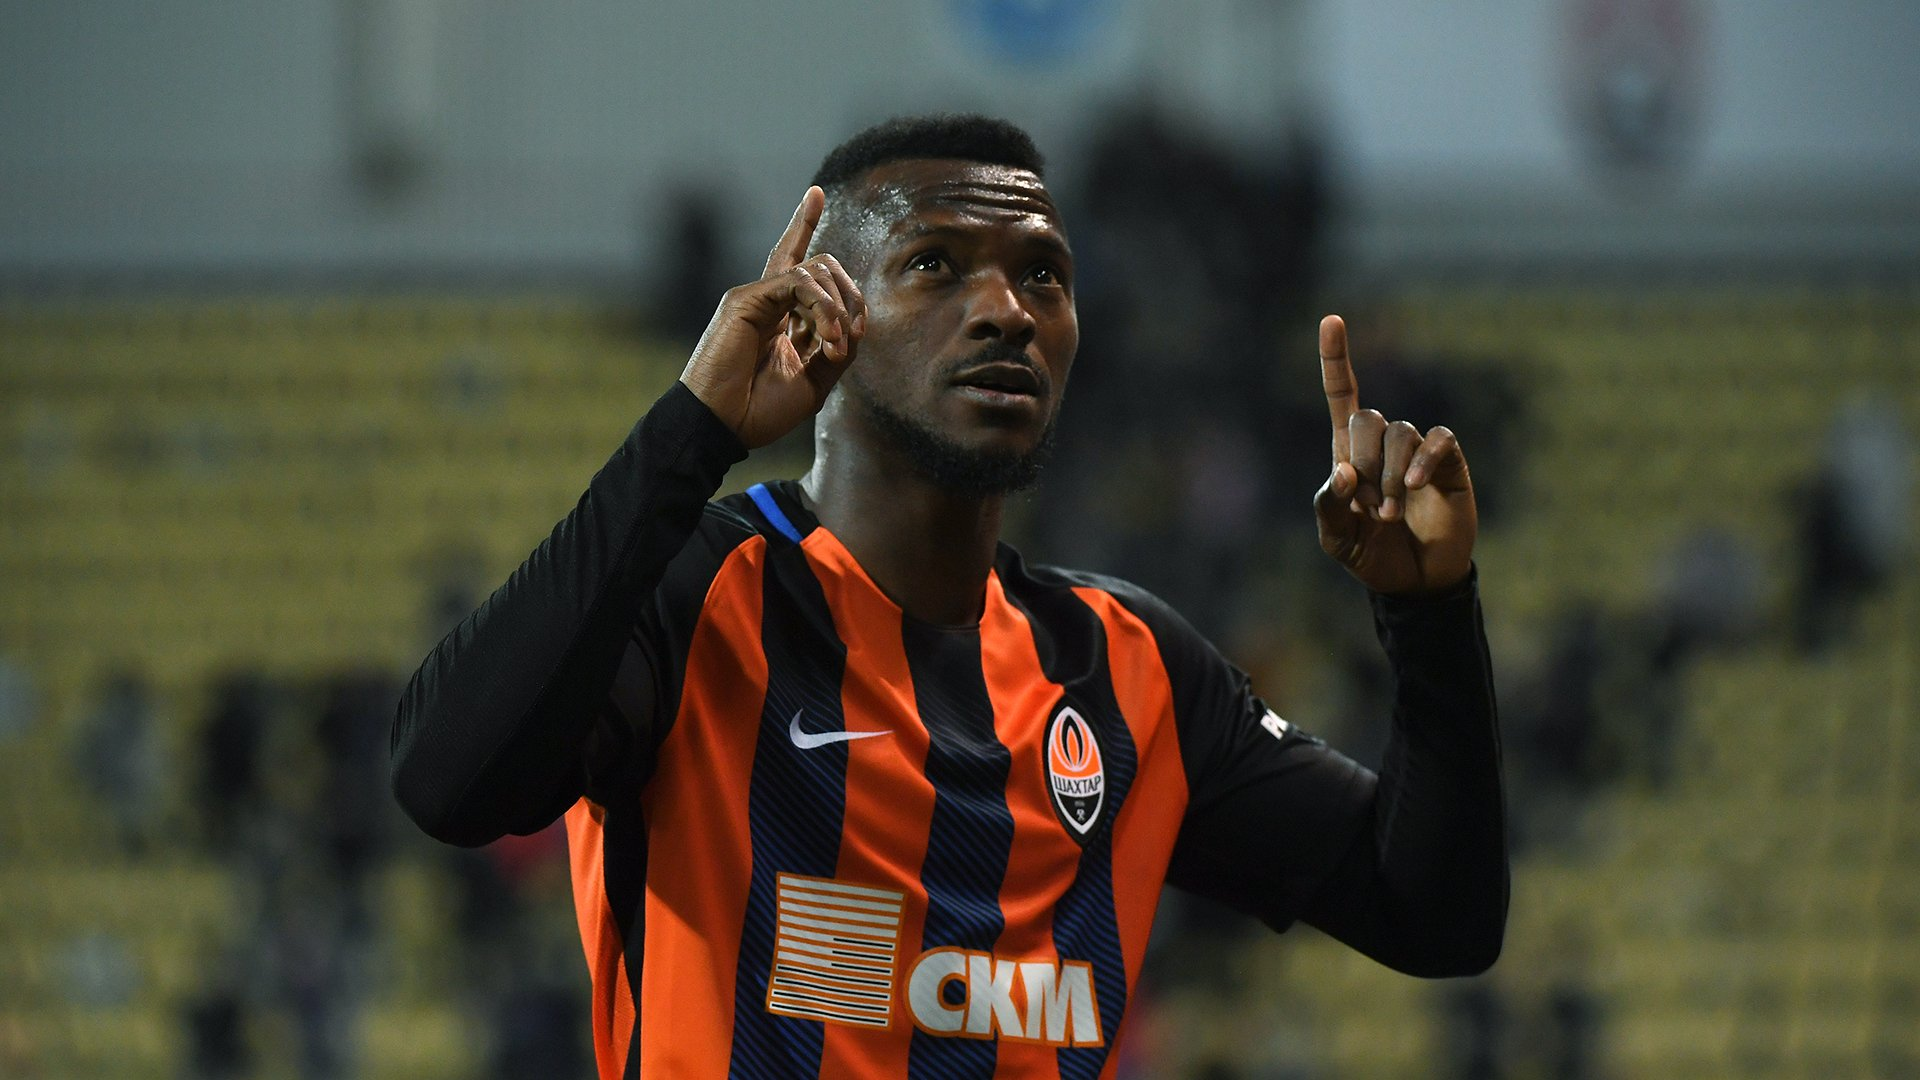 UCL: Kayode Named In Shakhtar Donetsk Squad For Hoffenheim Clash